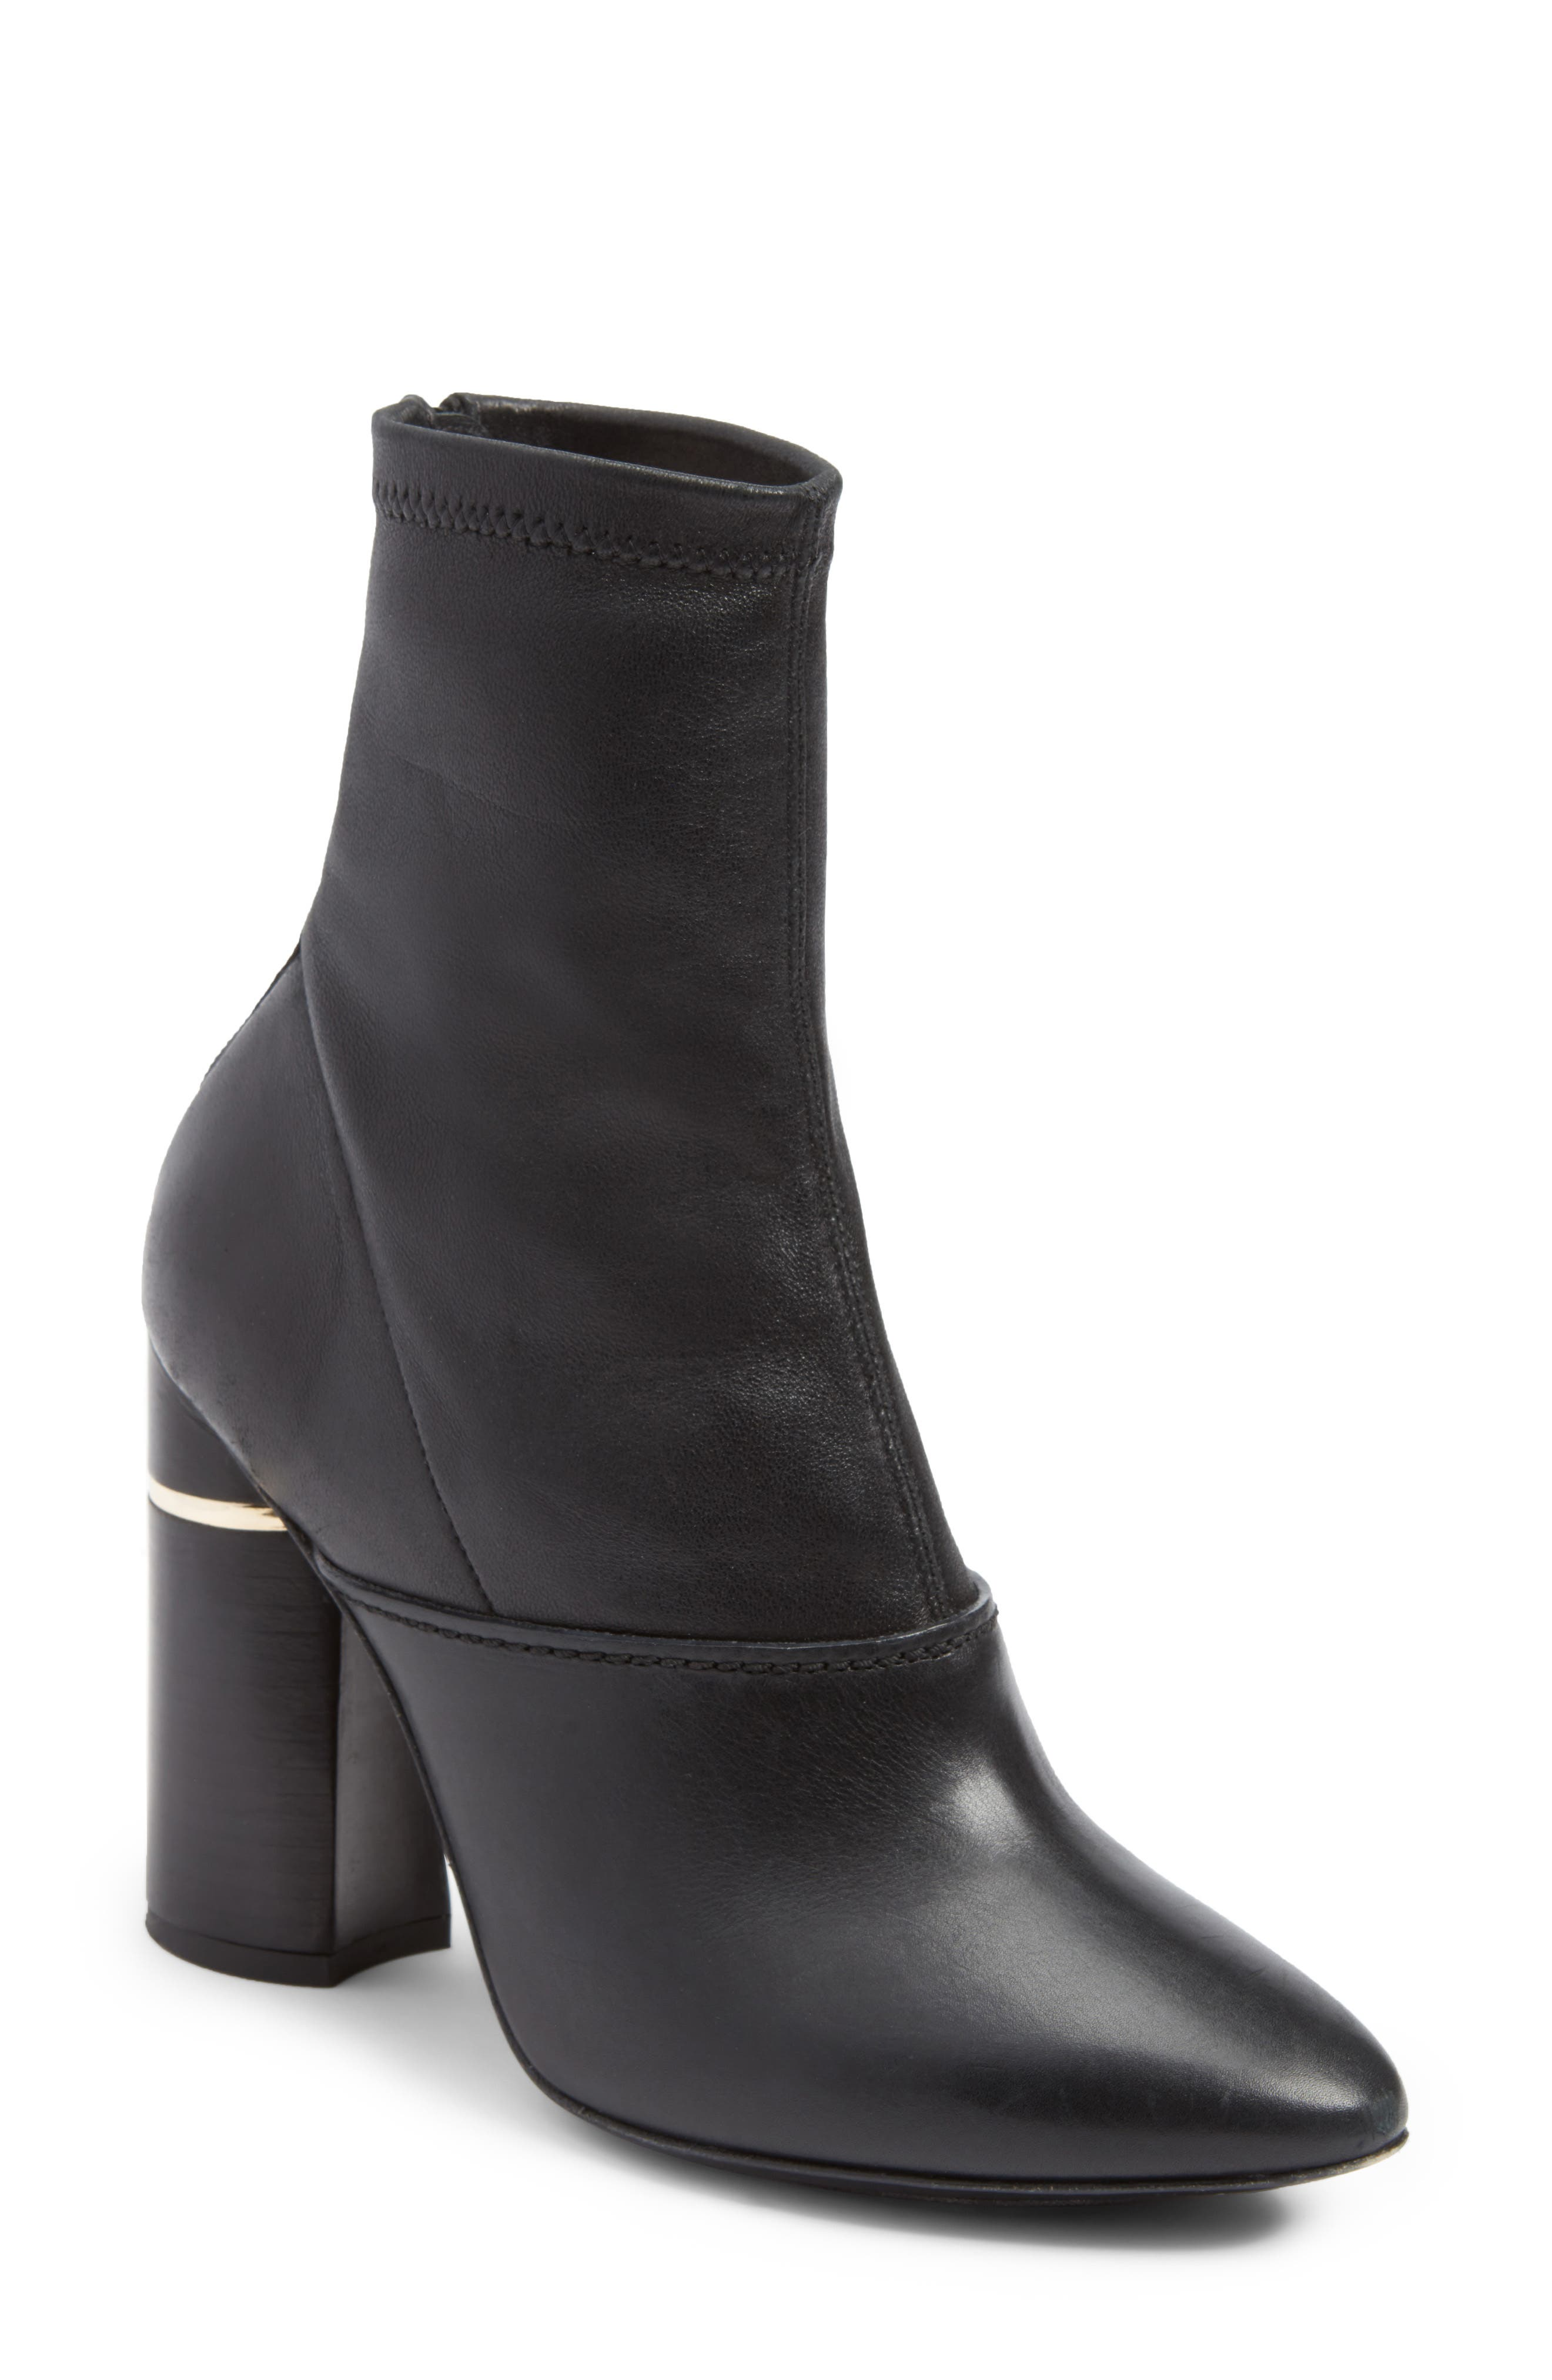 Main Image - 3.1 Phillip Lim Kyoto Leather Bootie (Women)